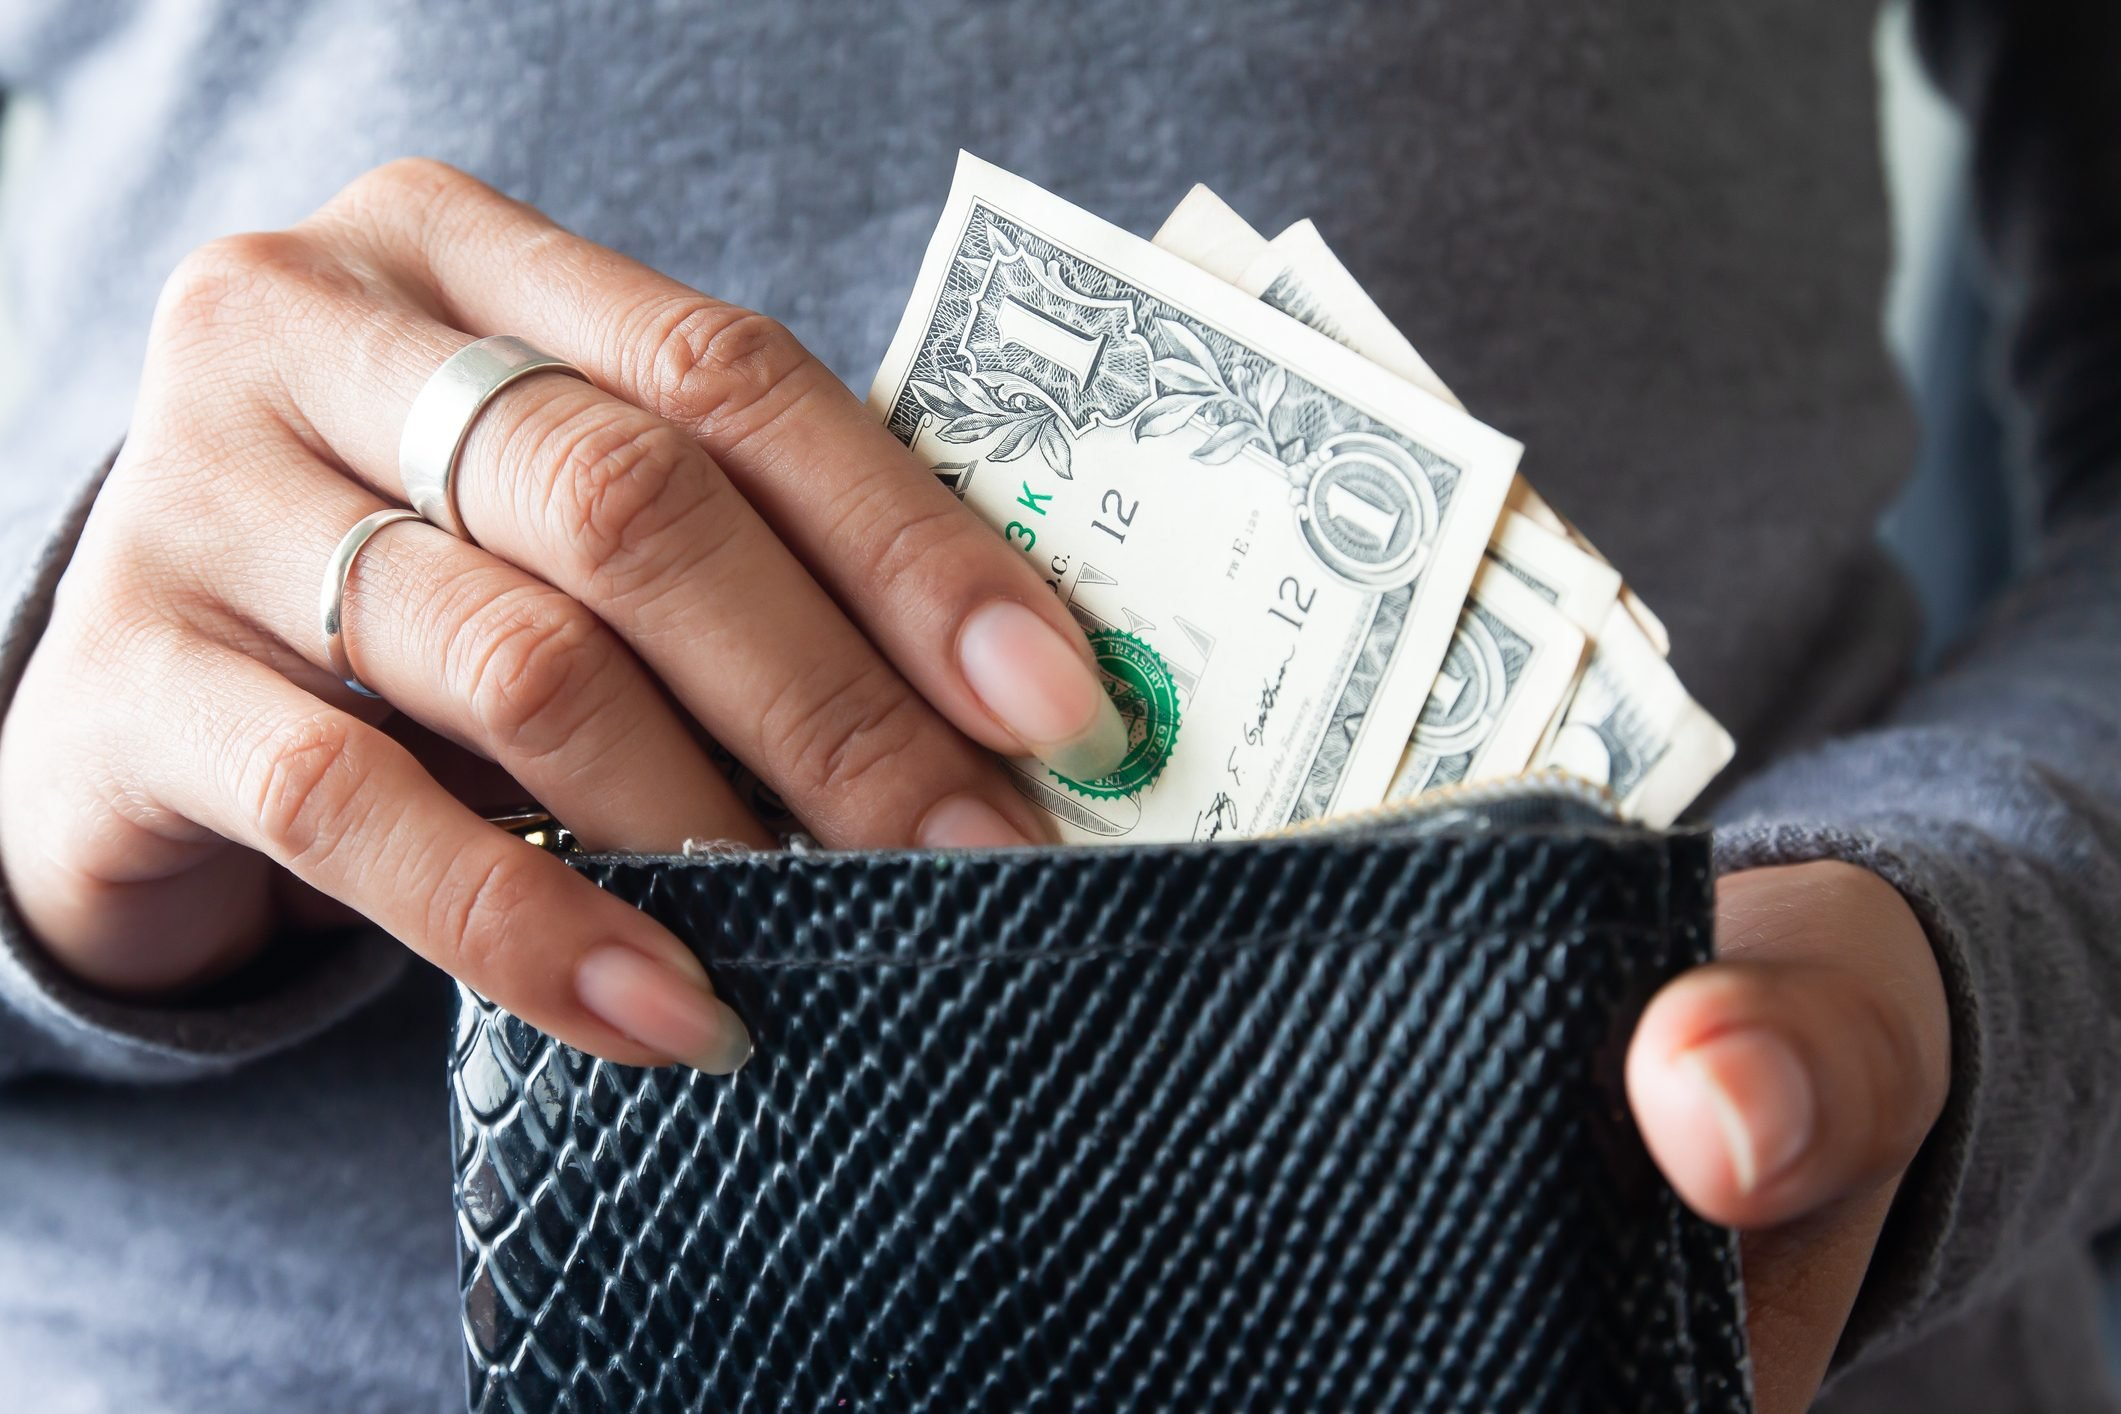 Midsection Of Woman Holding Wallet With Paper Currency